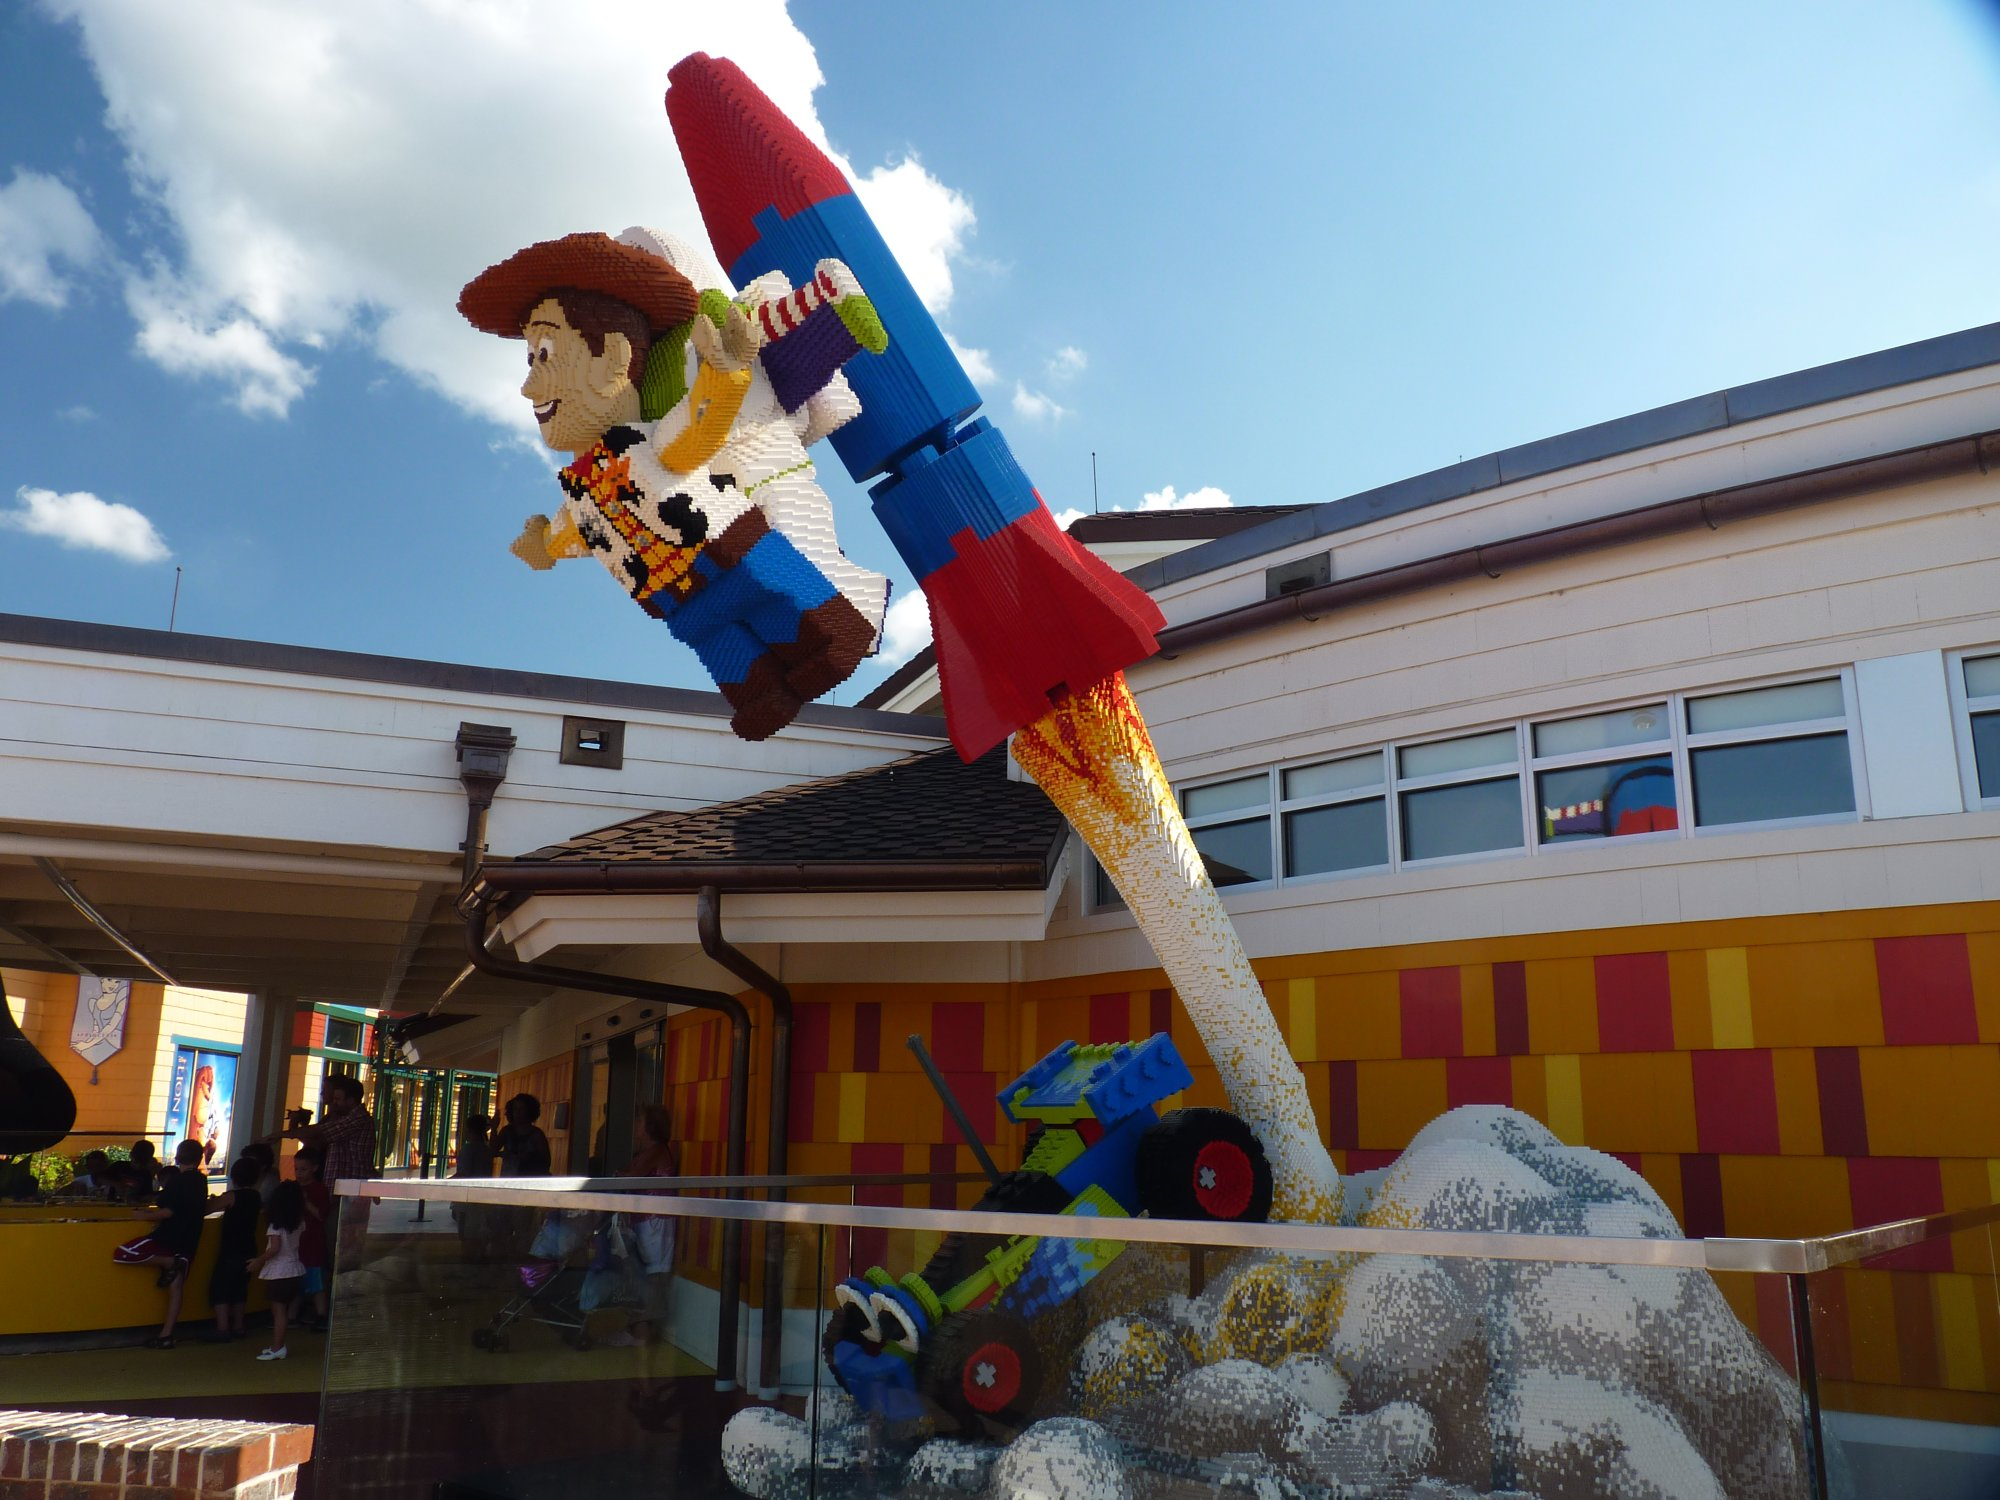 Jud's Disney Picture of the Day: Sheriff Woody to the Rescue!